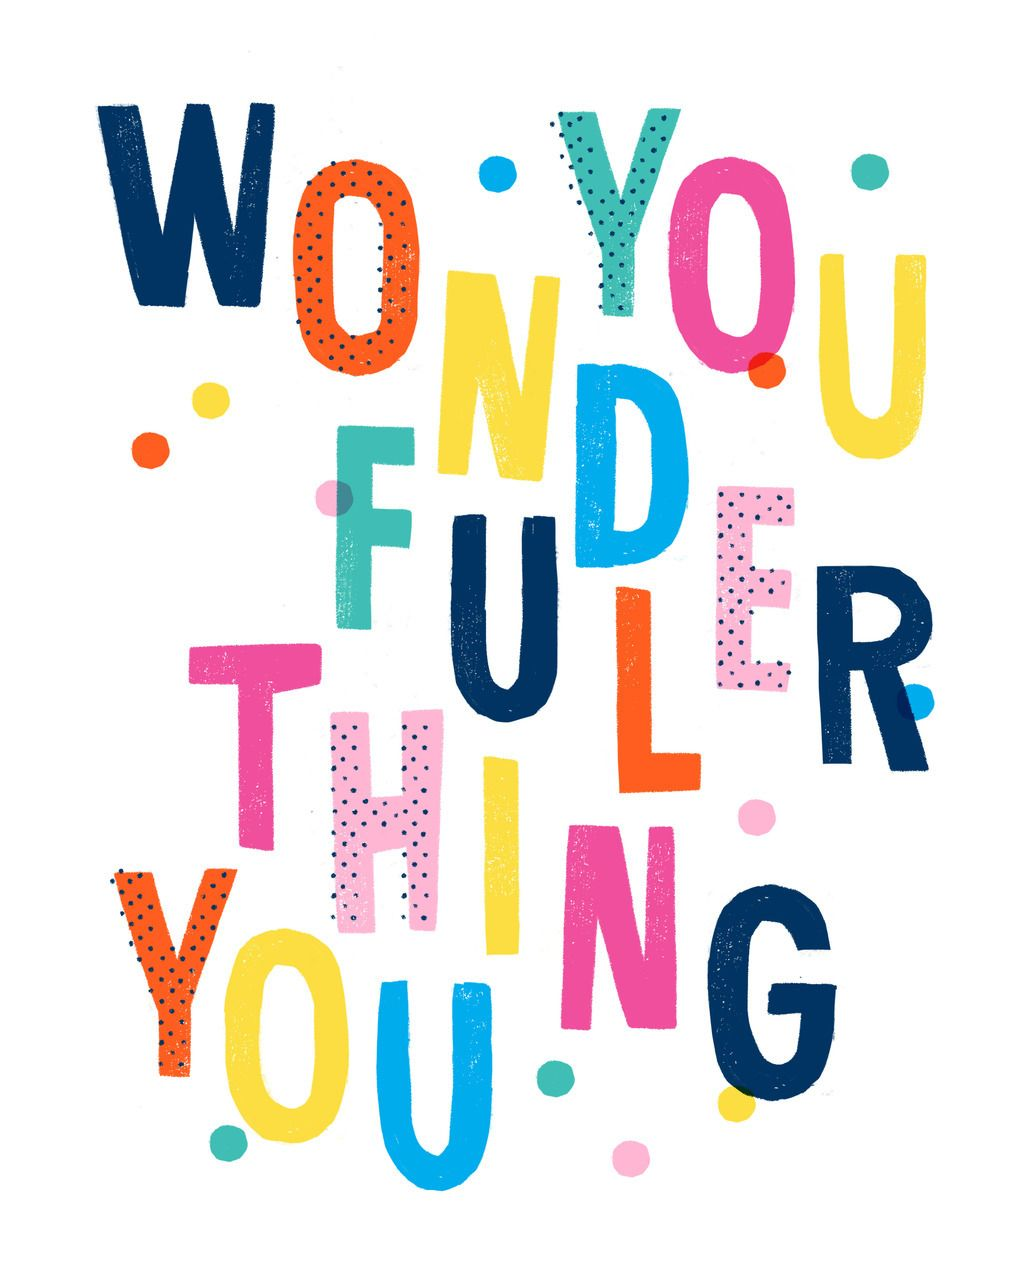 Küche design zitate you wonderful thing you  words that inspire  pinterest